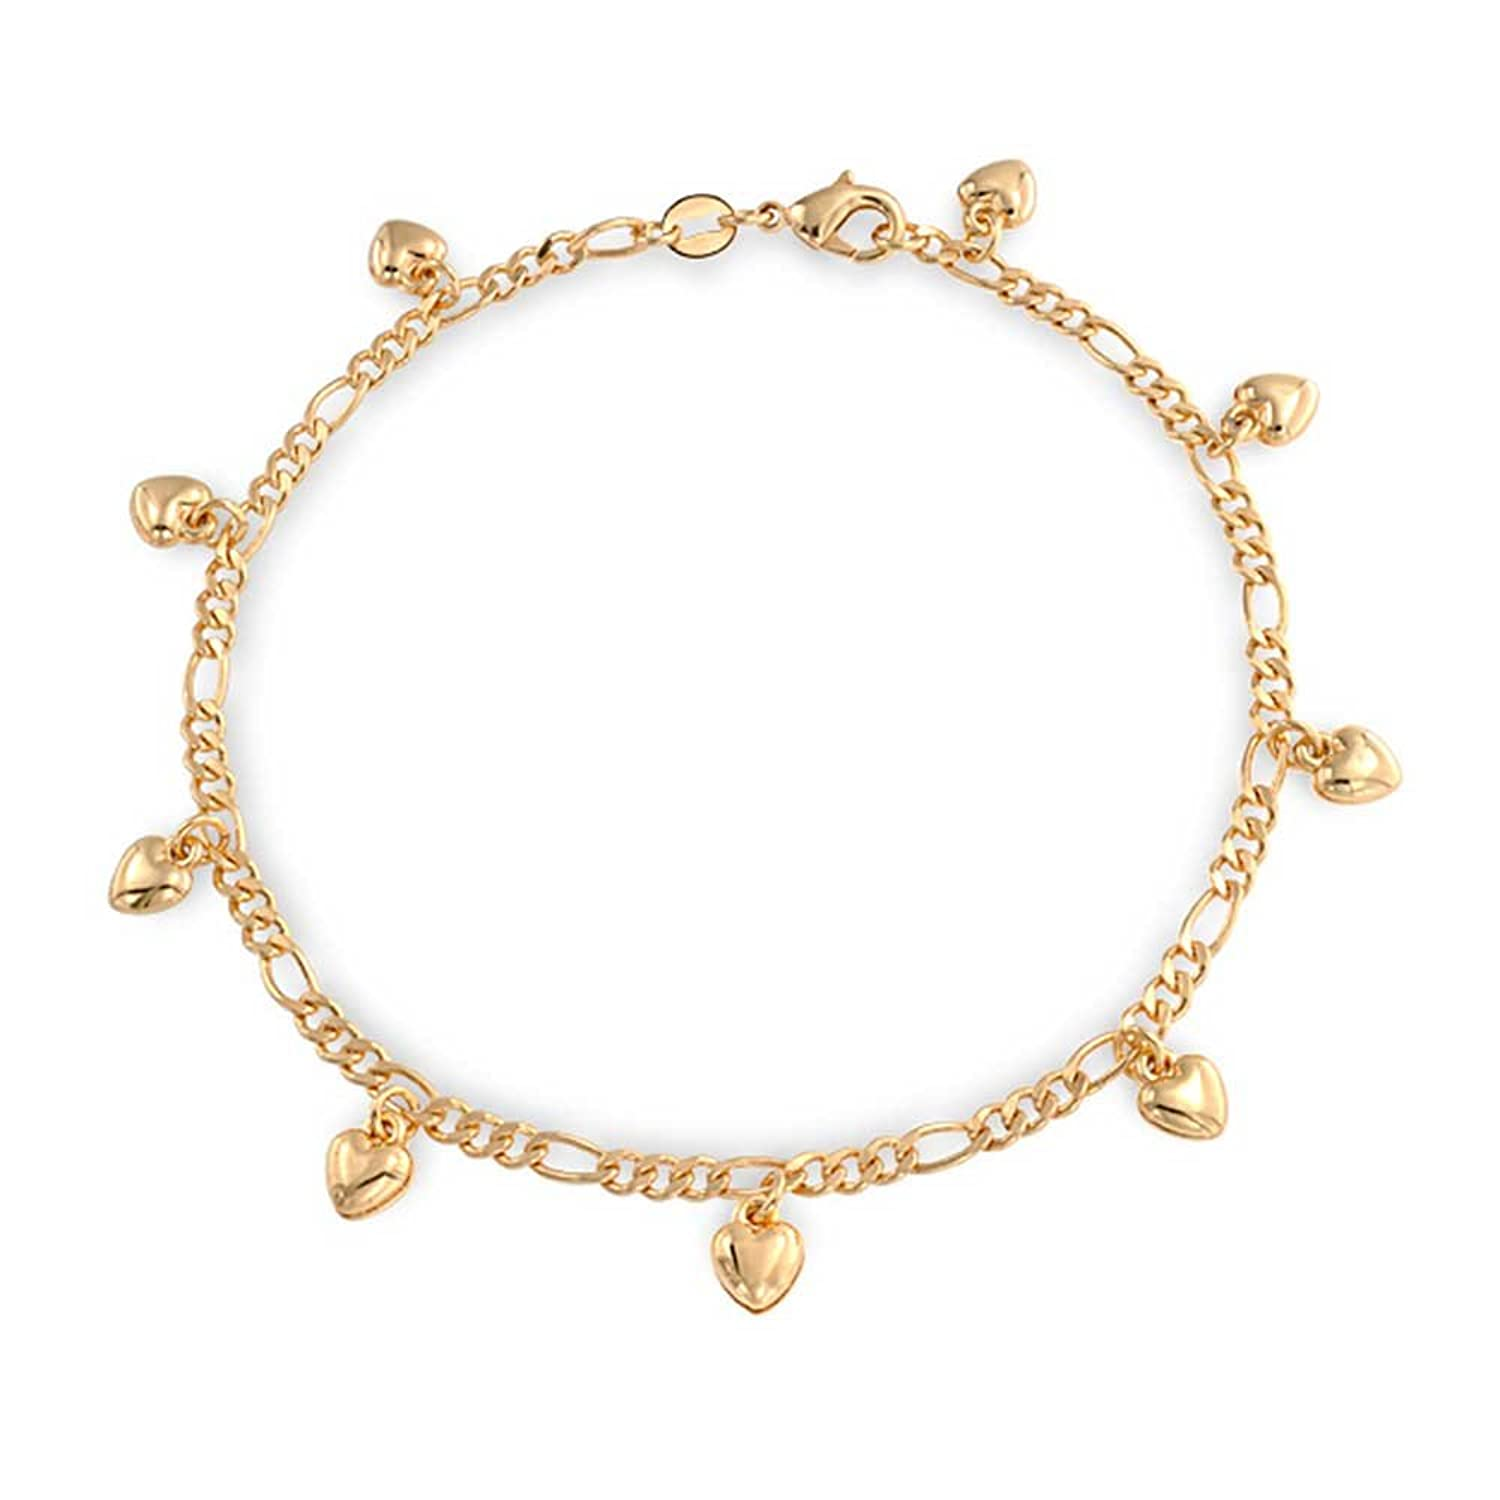 foot plated chain charms ankle of itm heart rose made gold with stainless charm new bracelet bracelets anklet steel